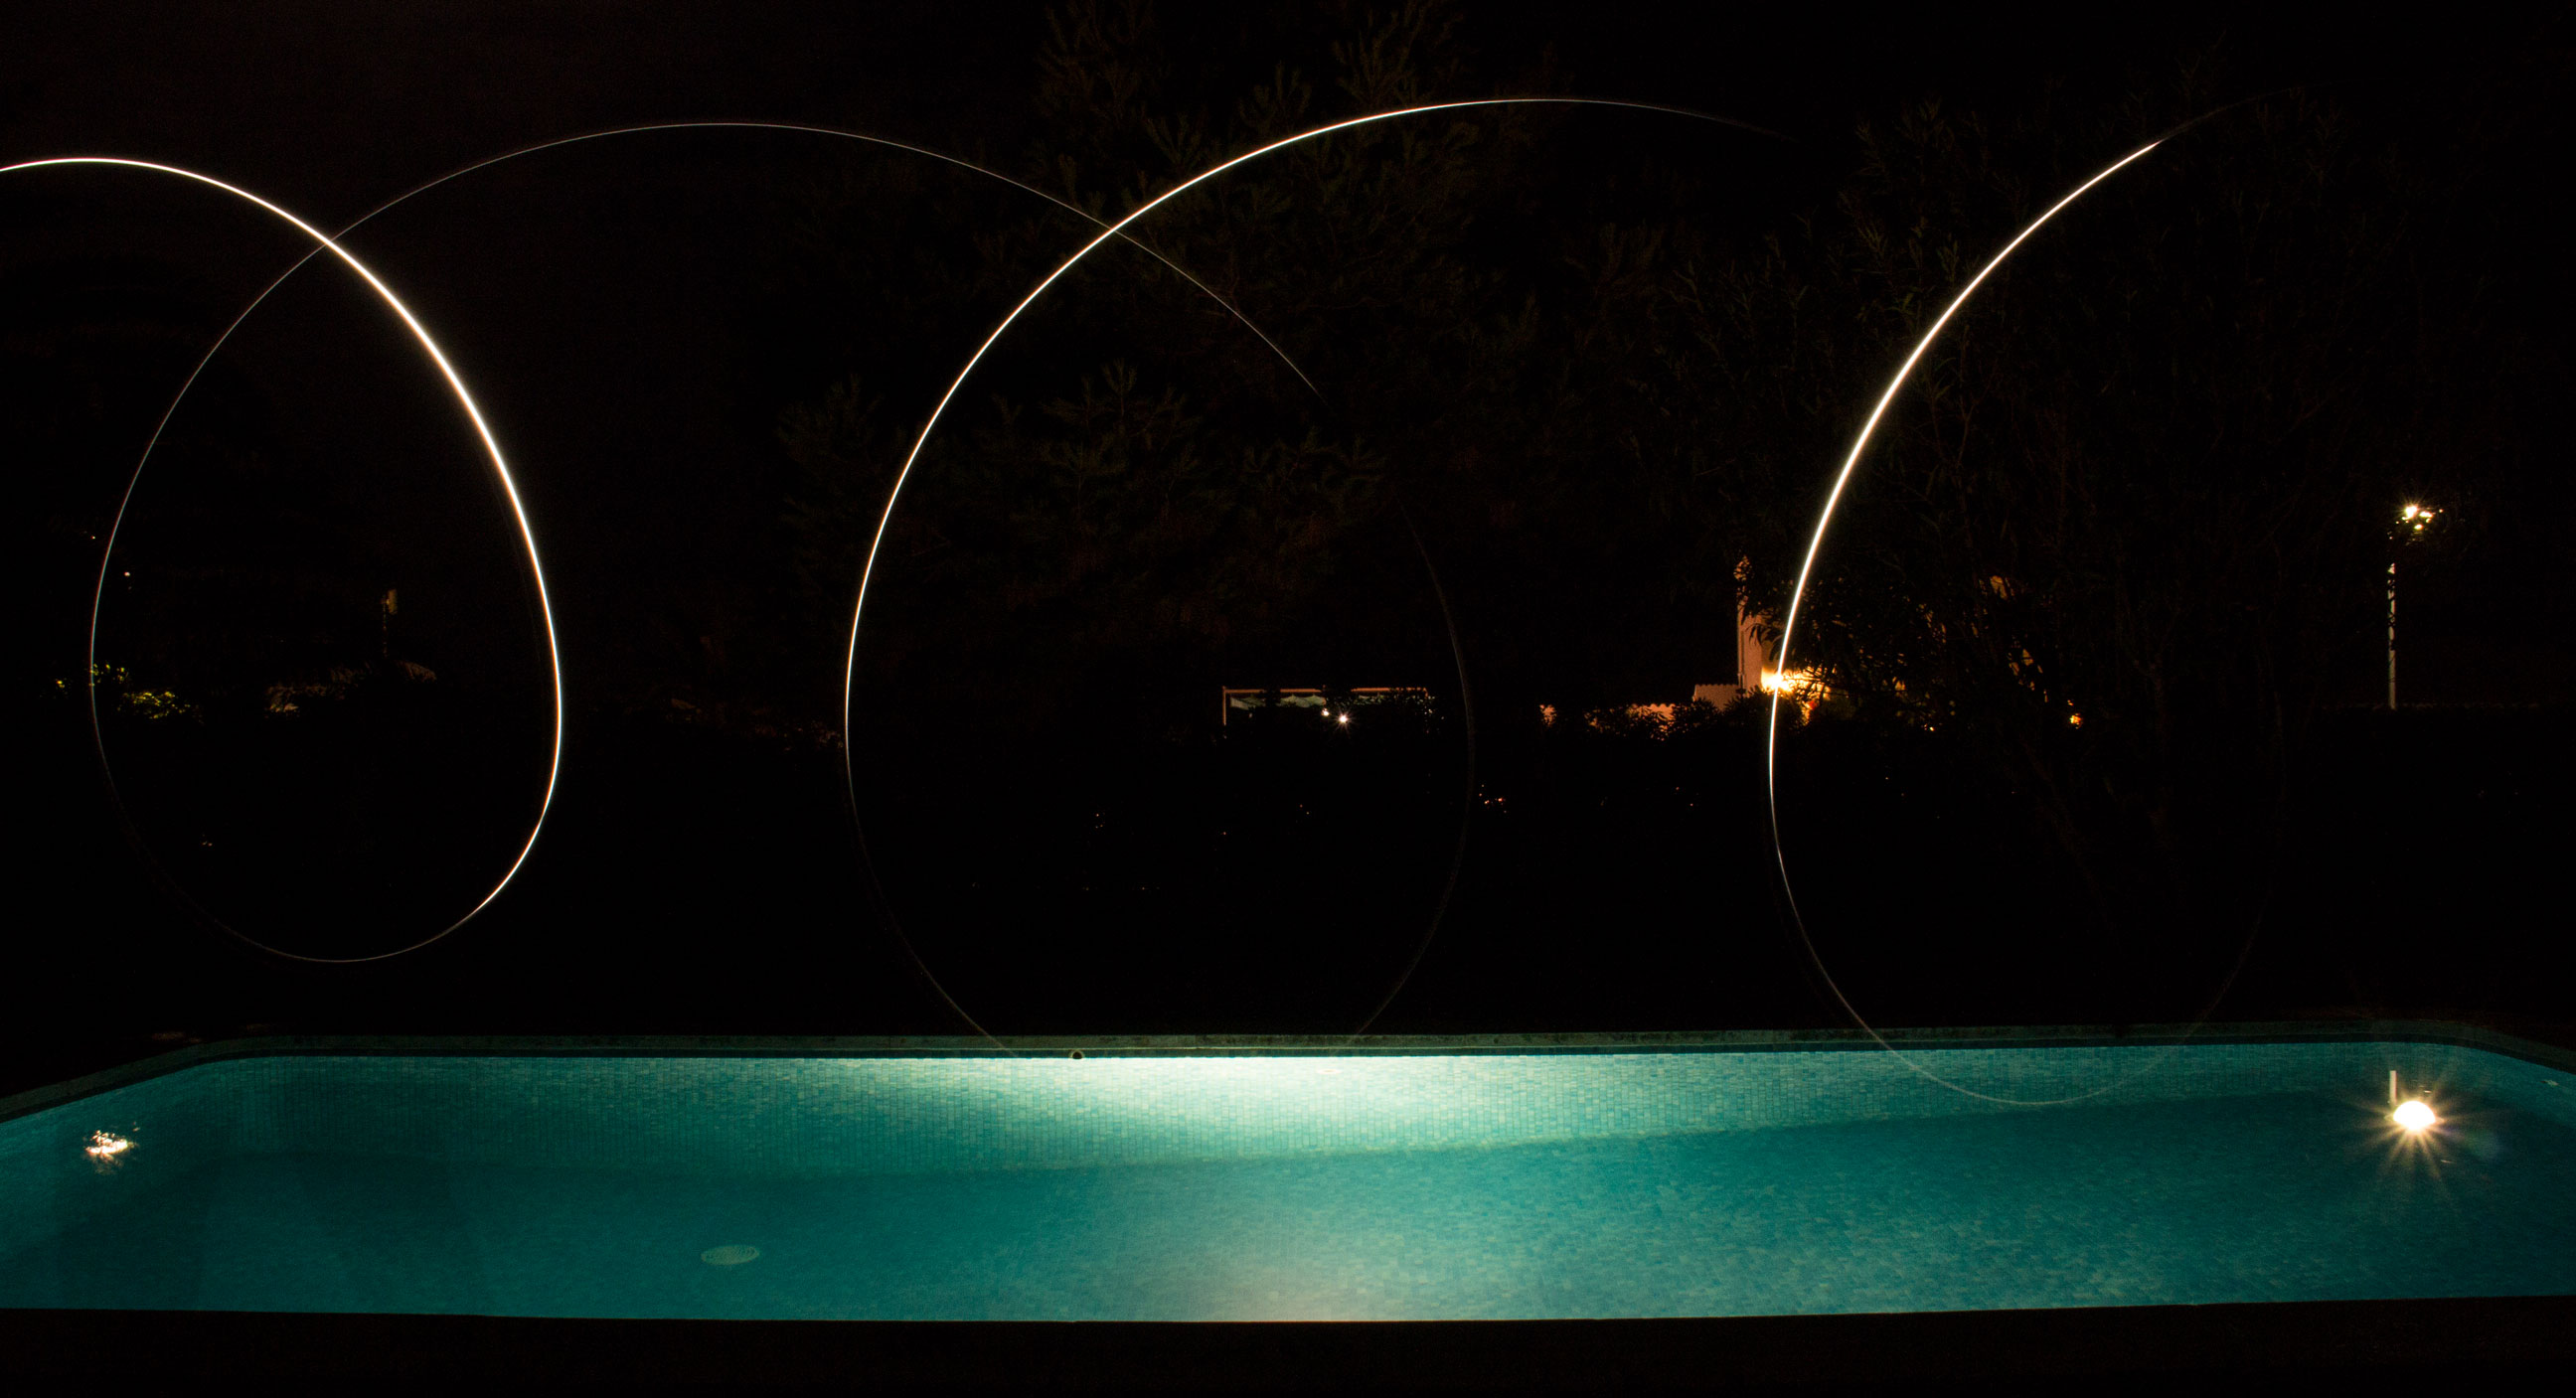 Swimming lights